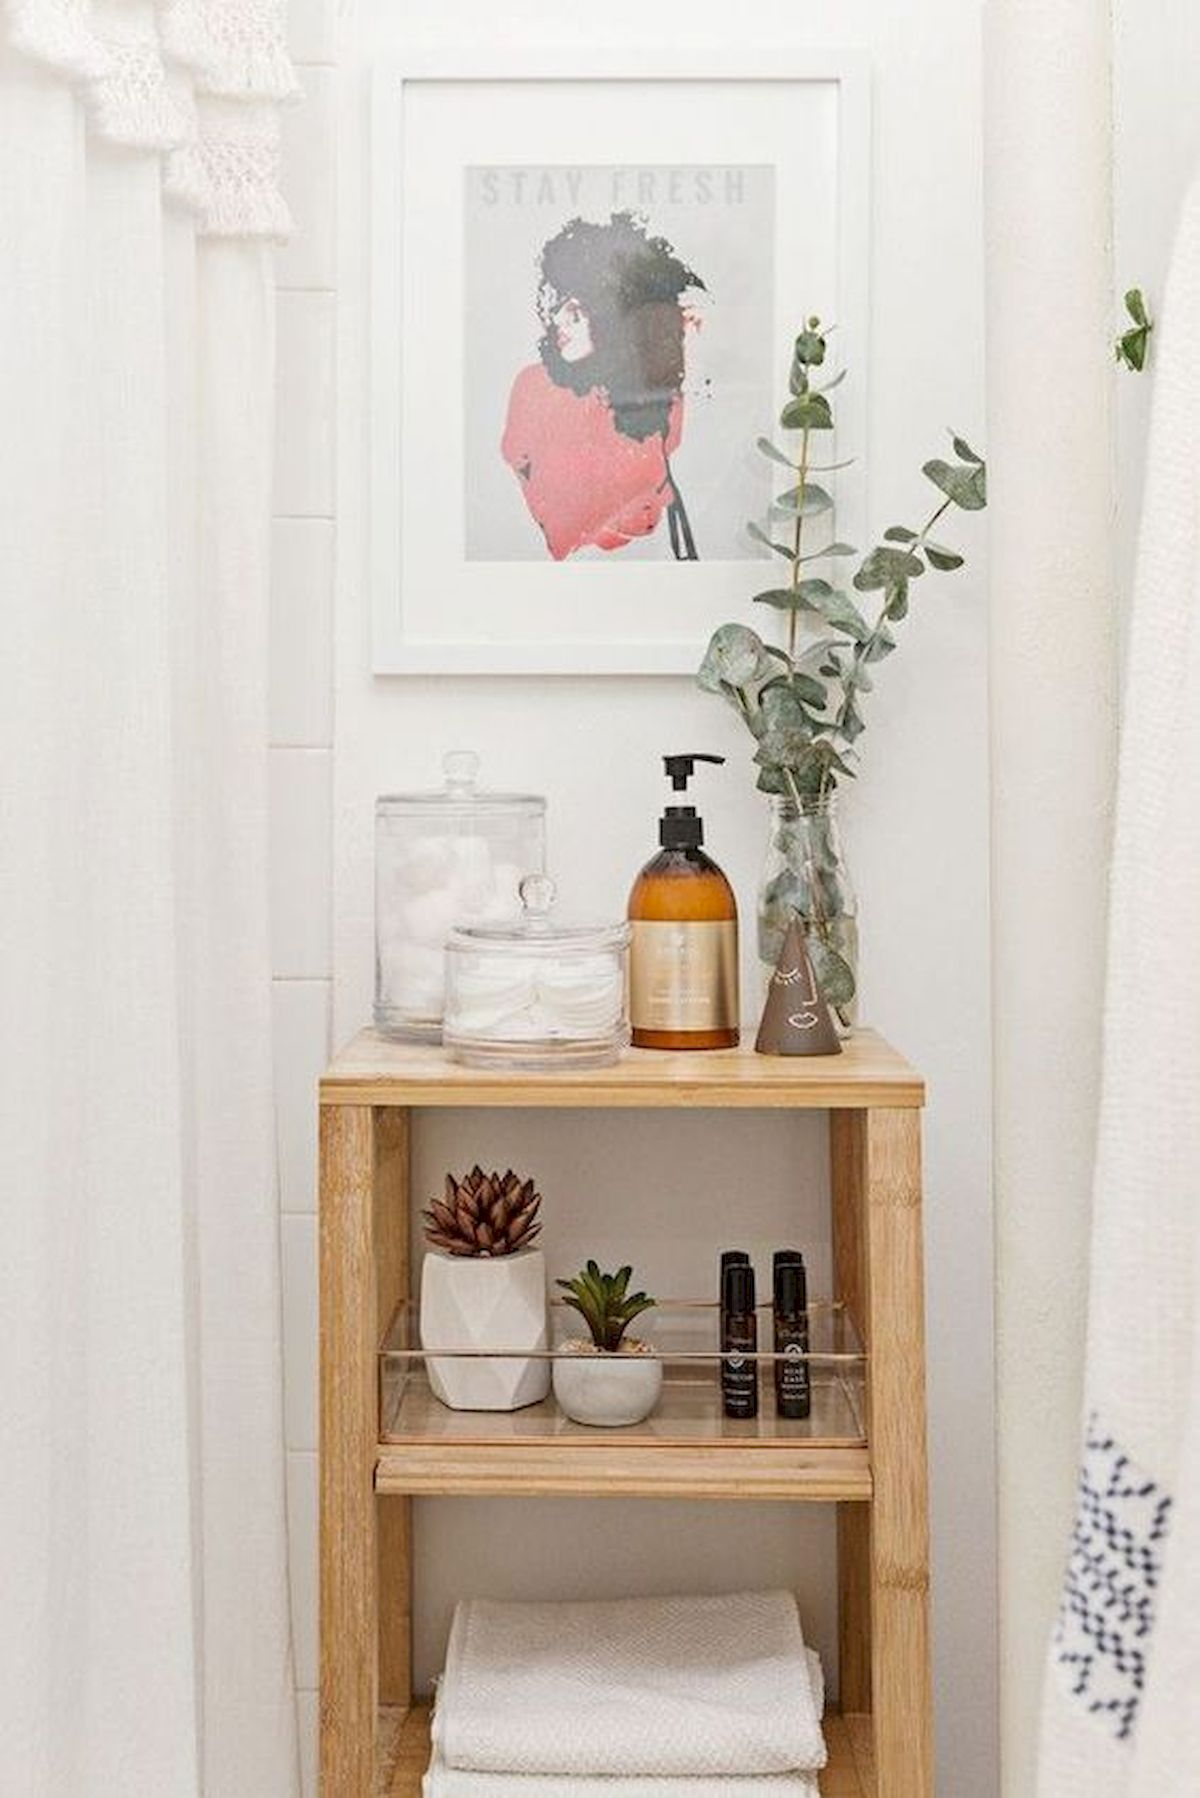 50 Best DIY Storage Design Ideas To Maximize Your Small Bathroom Space (40)